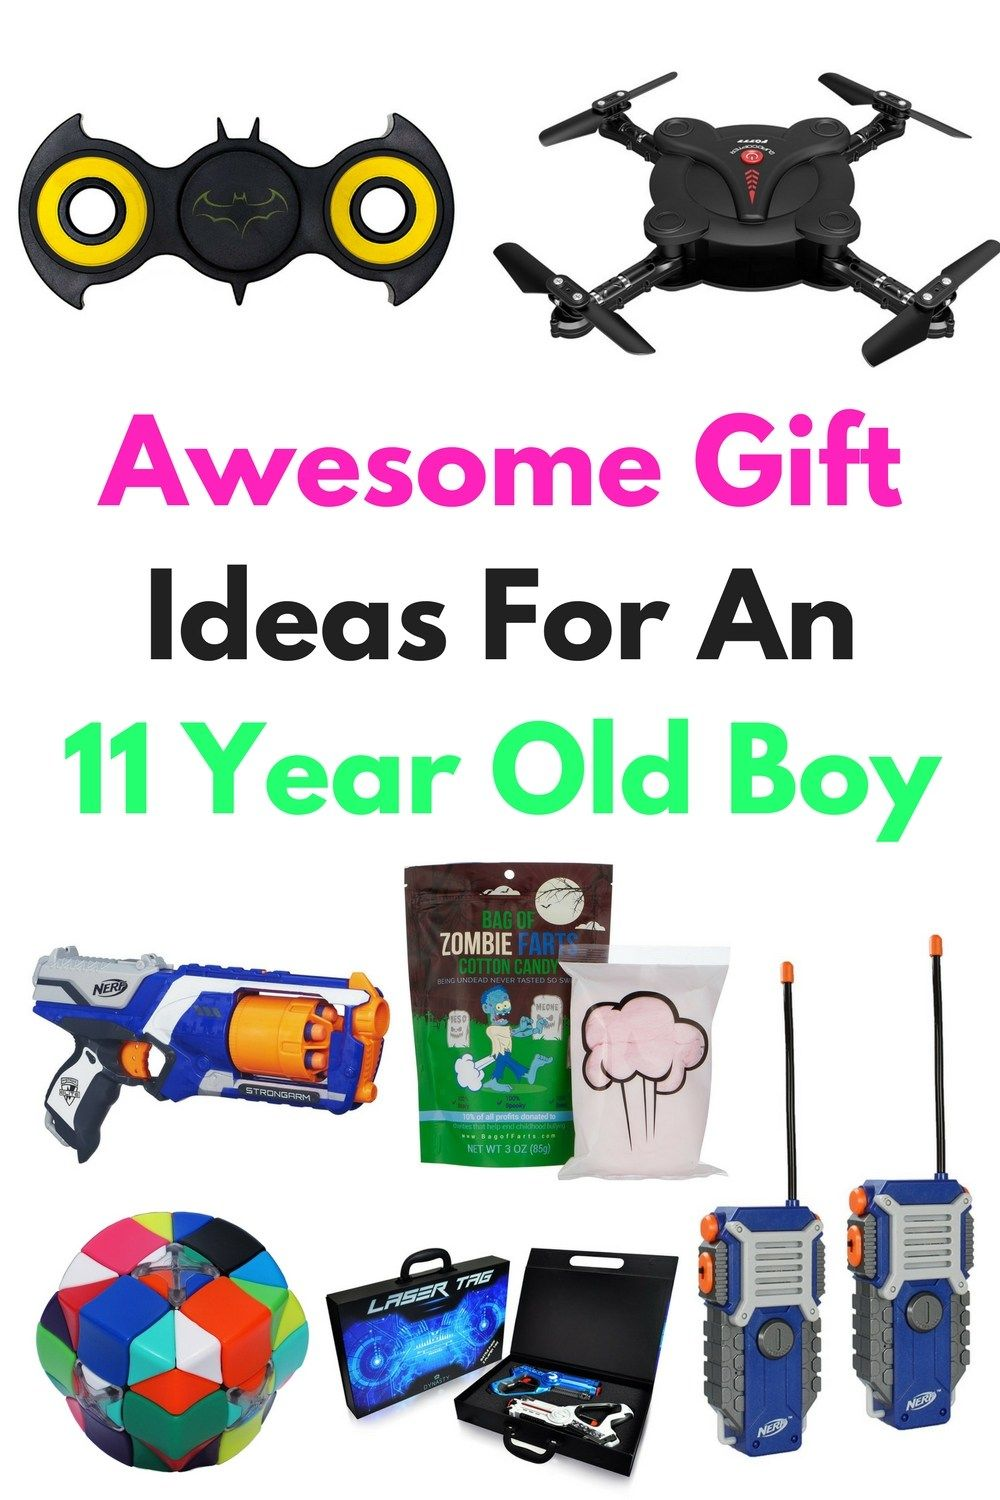 Are You Searching For Gift Ideas An 11 Year Old Boy Here A Lot Of Awesome To Use Birthday Present Christmas In Easter Basket